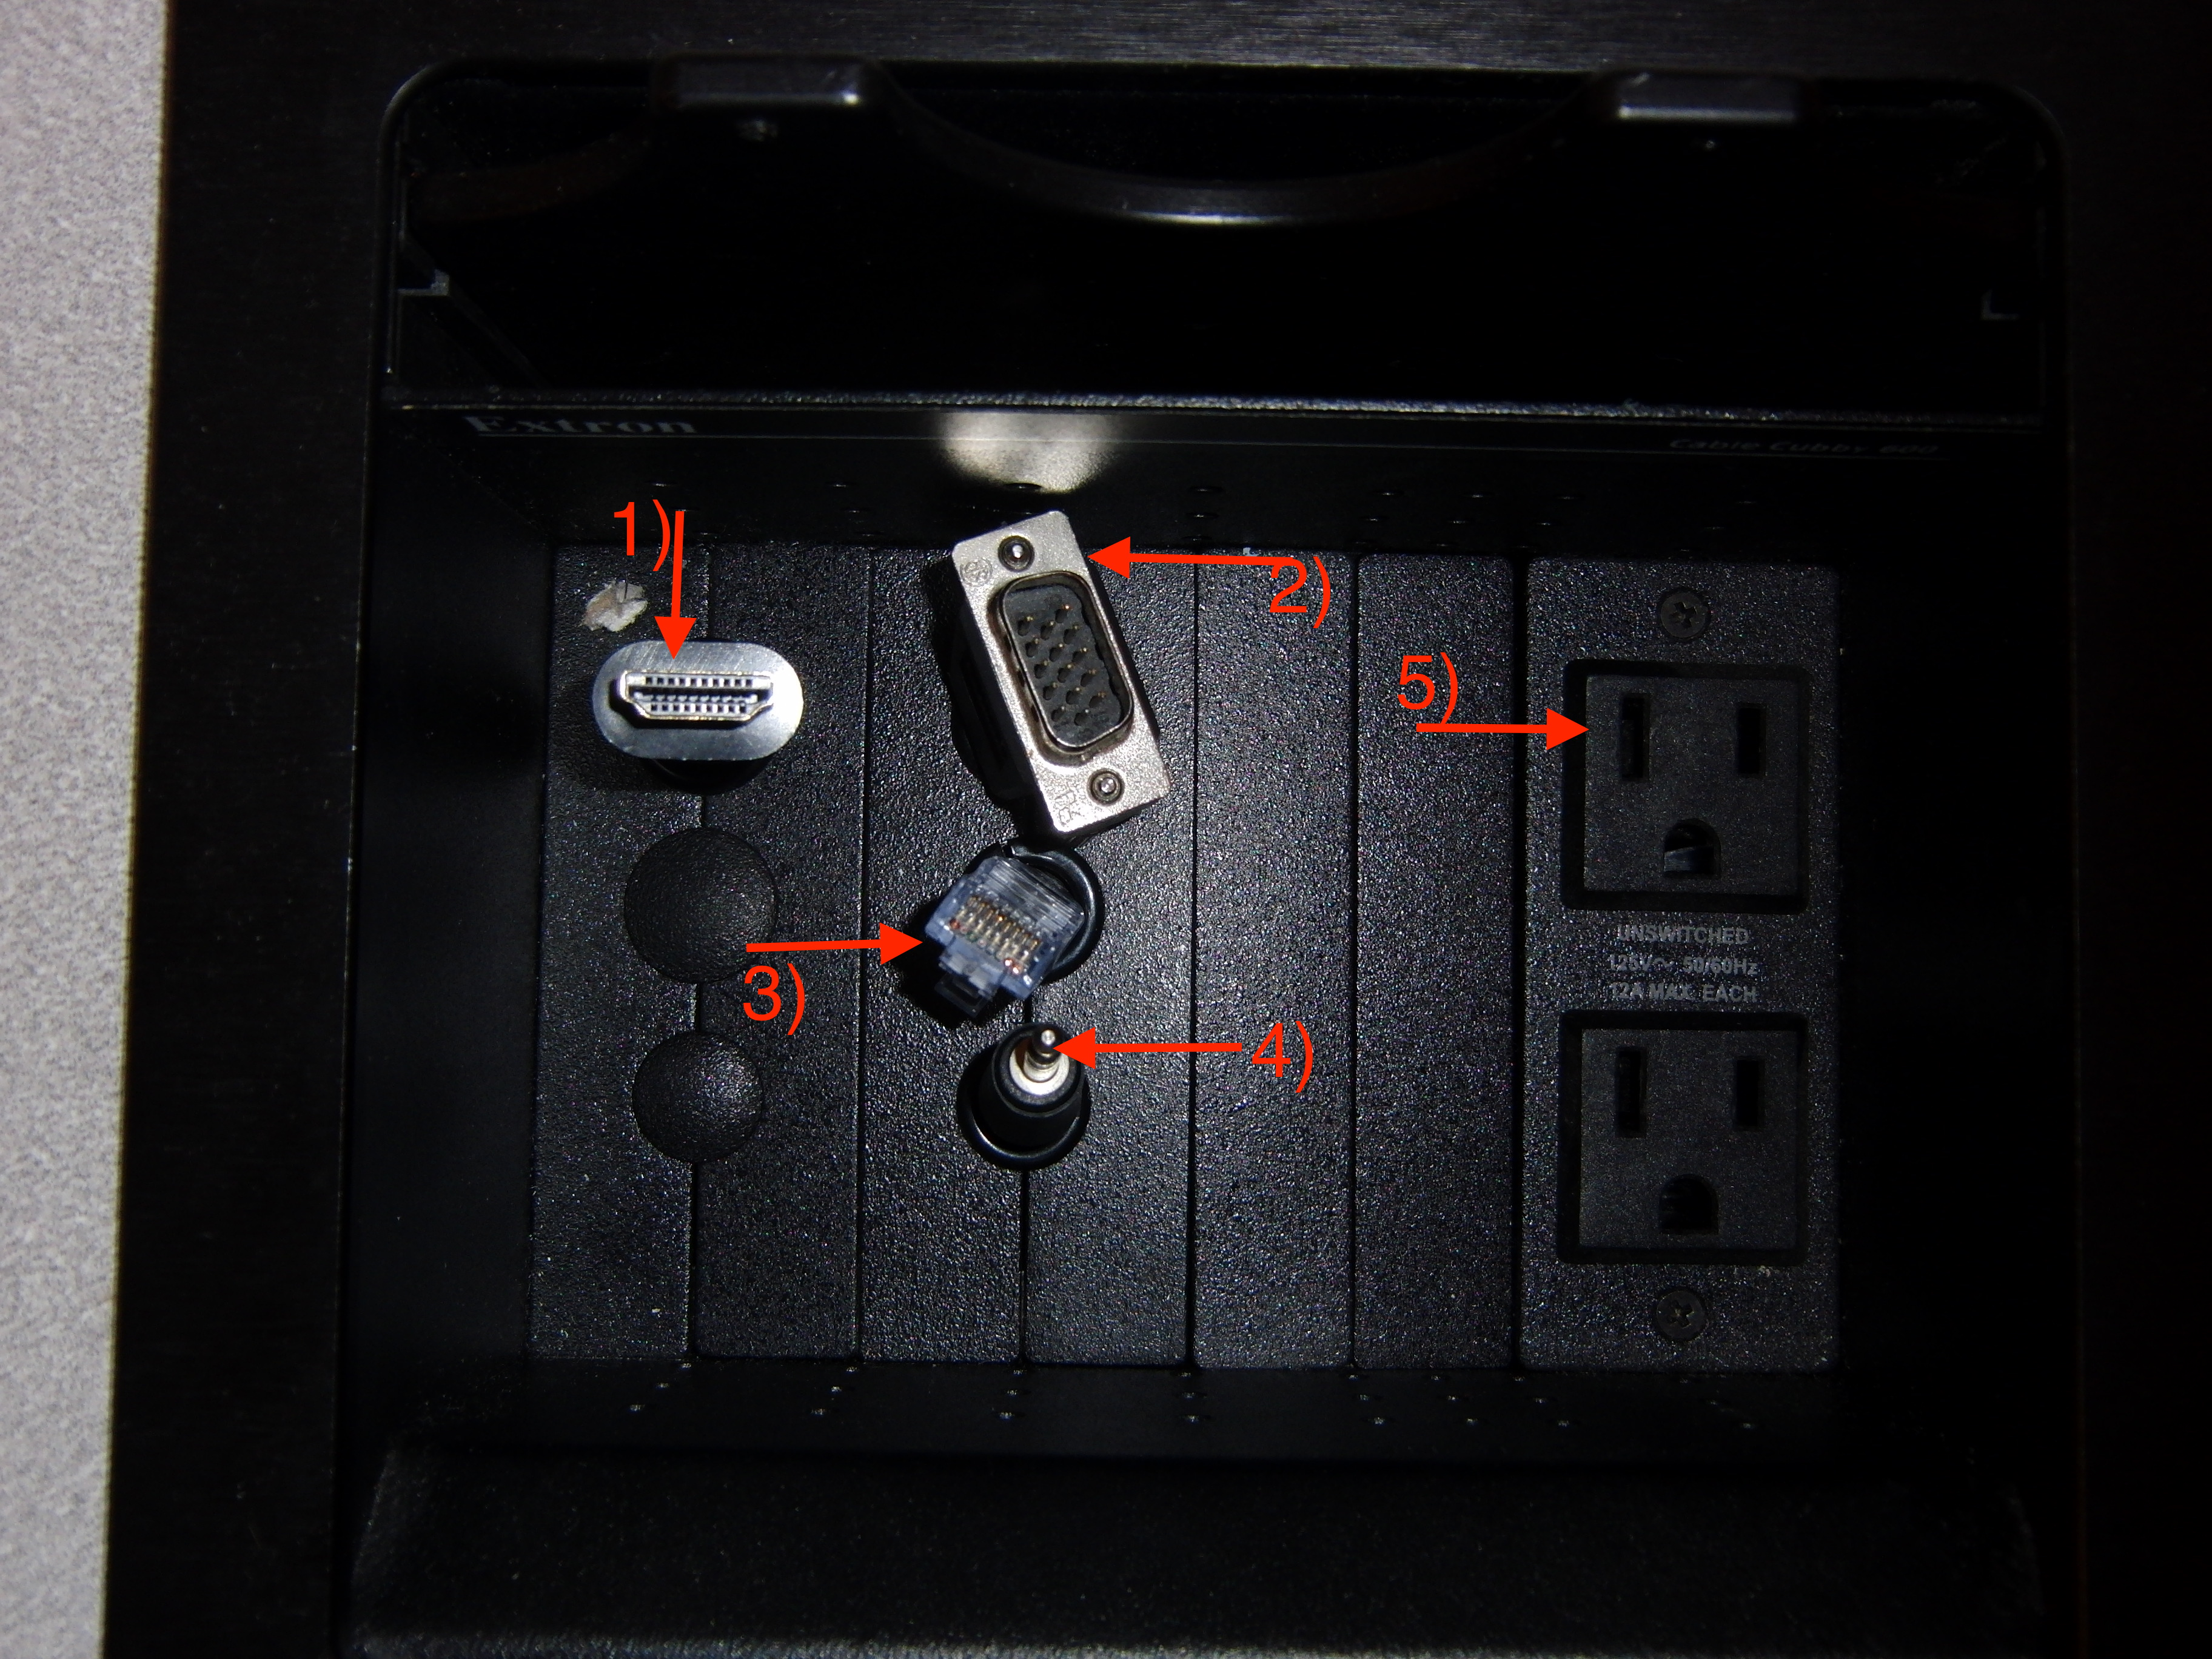 Photo of the cable cubby installed at the instructor's station with the HDMI, VGA, network, audio, and power outlets identified by number